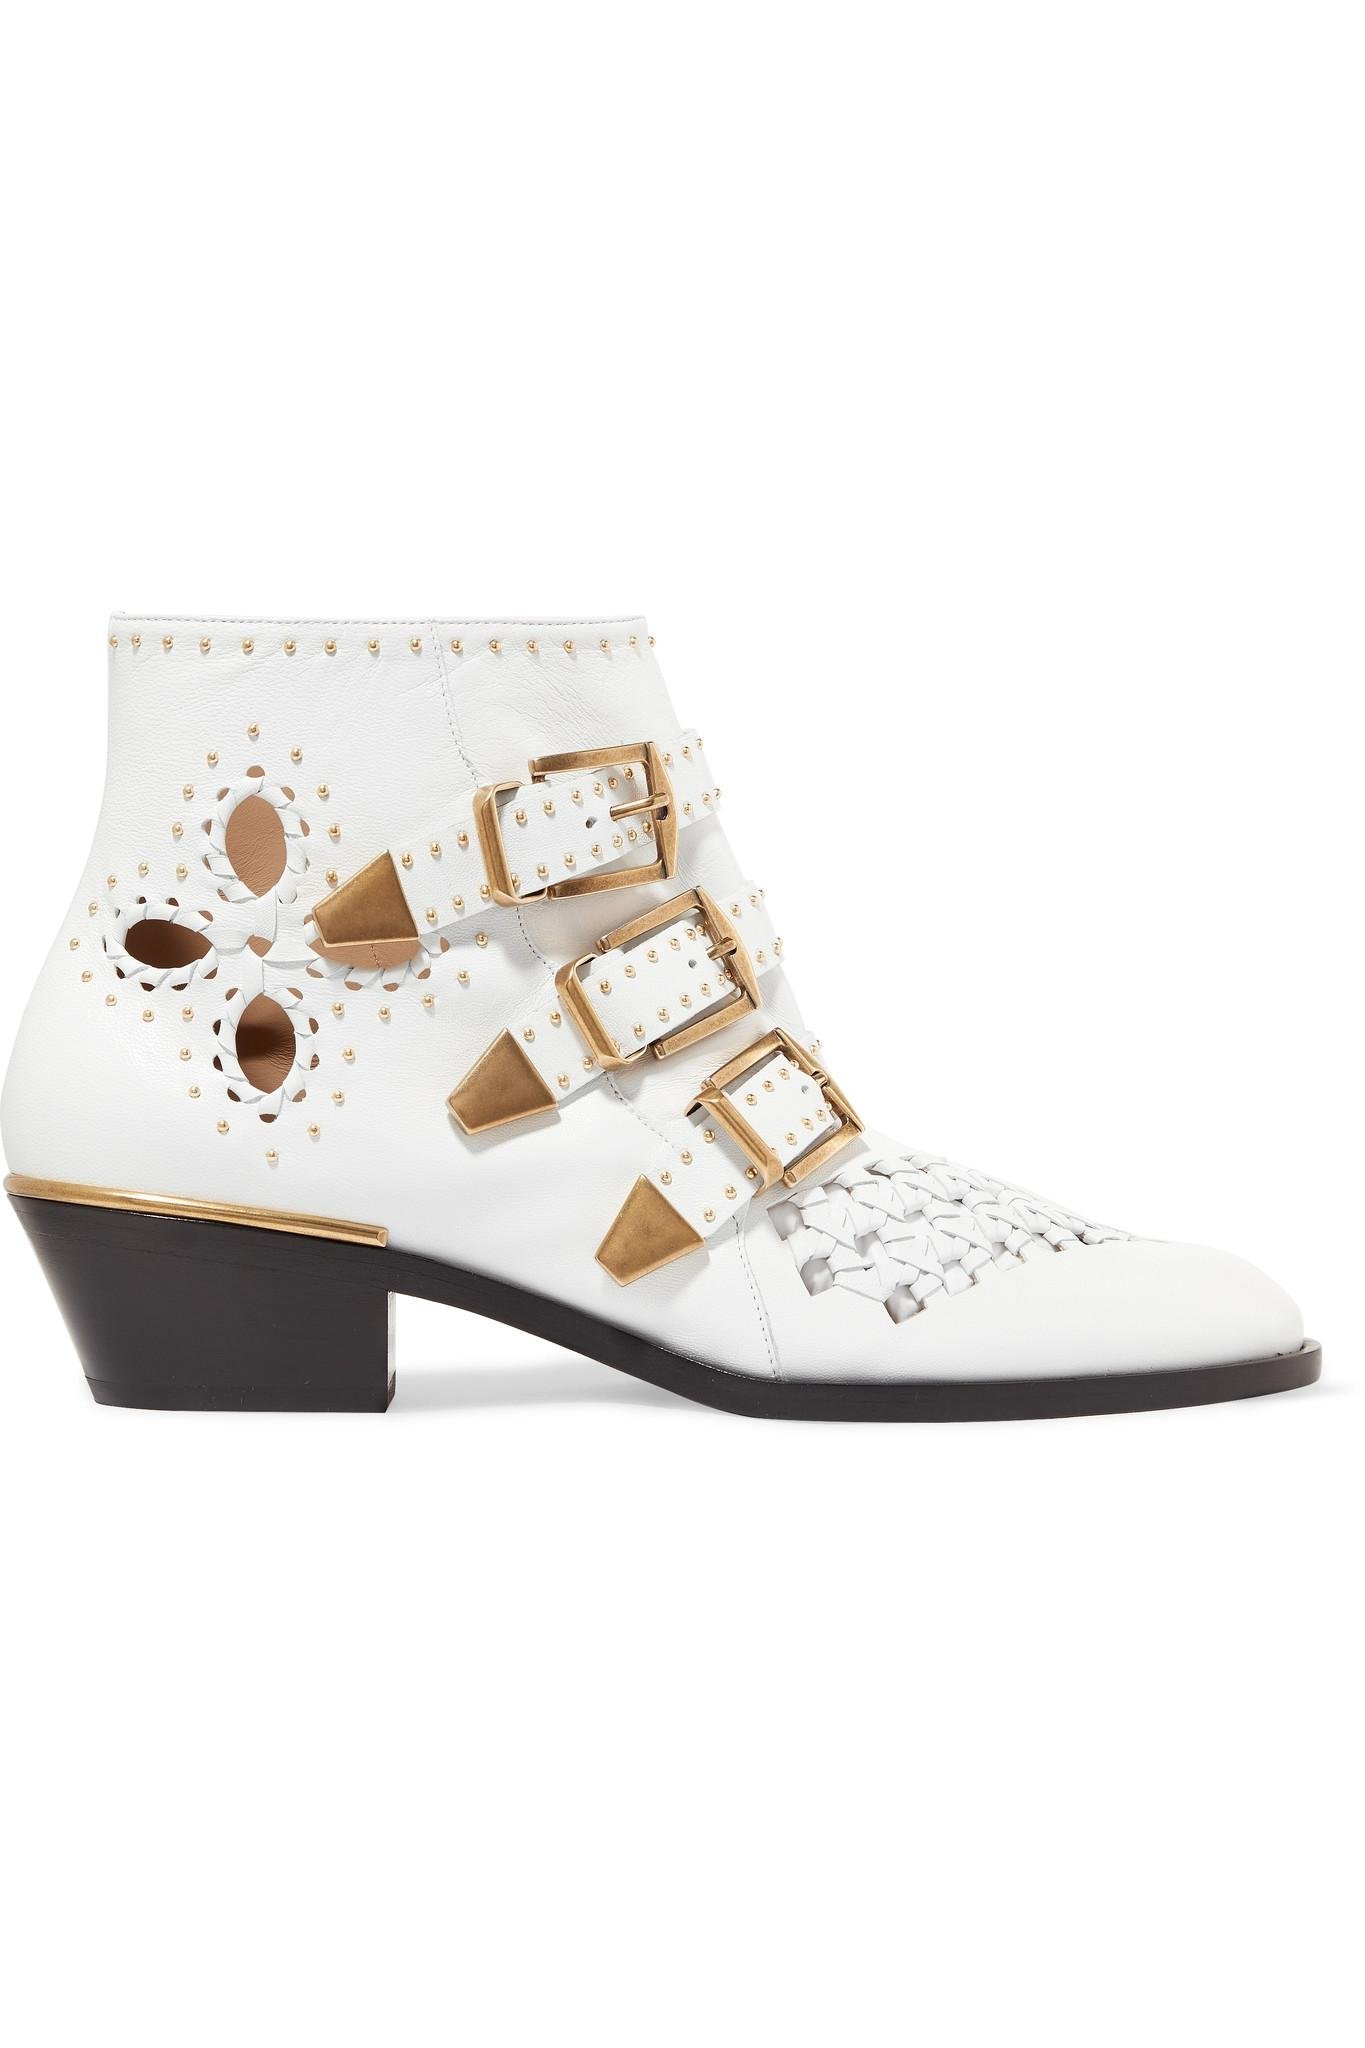 50f5253f2fa0 Chloé. Women s White Susanna Cutout Studded Leather Ankle Boots. £1